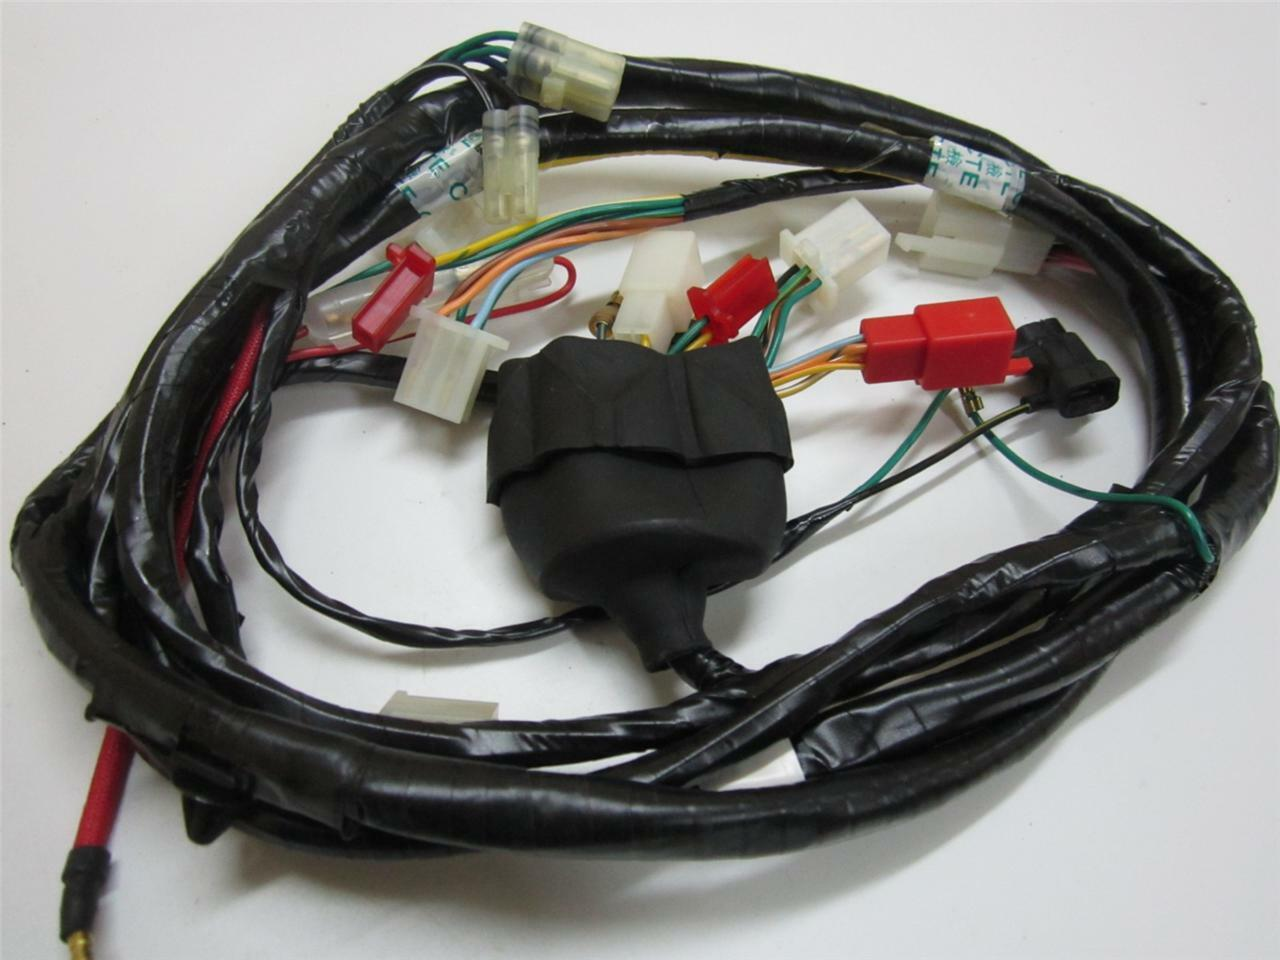 New Genuine Sym Joyride 200 Wire Harness Pn 32100 Hla 000 3325 Kymco Wiring 1 Of 2only Available